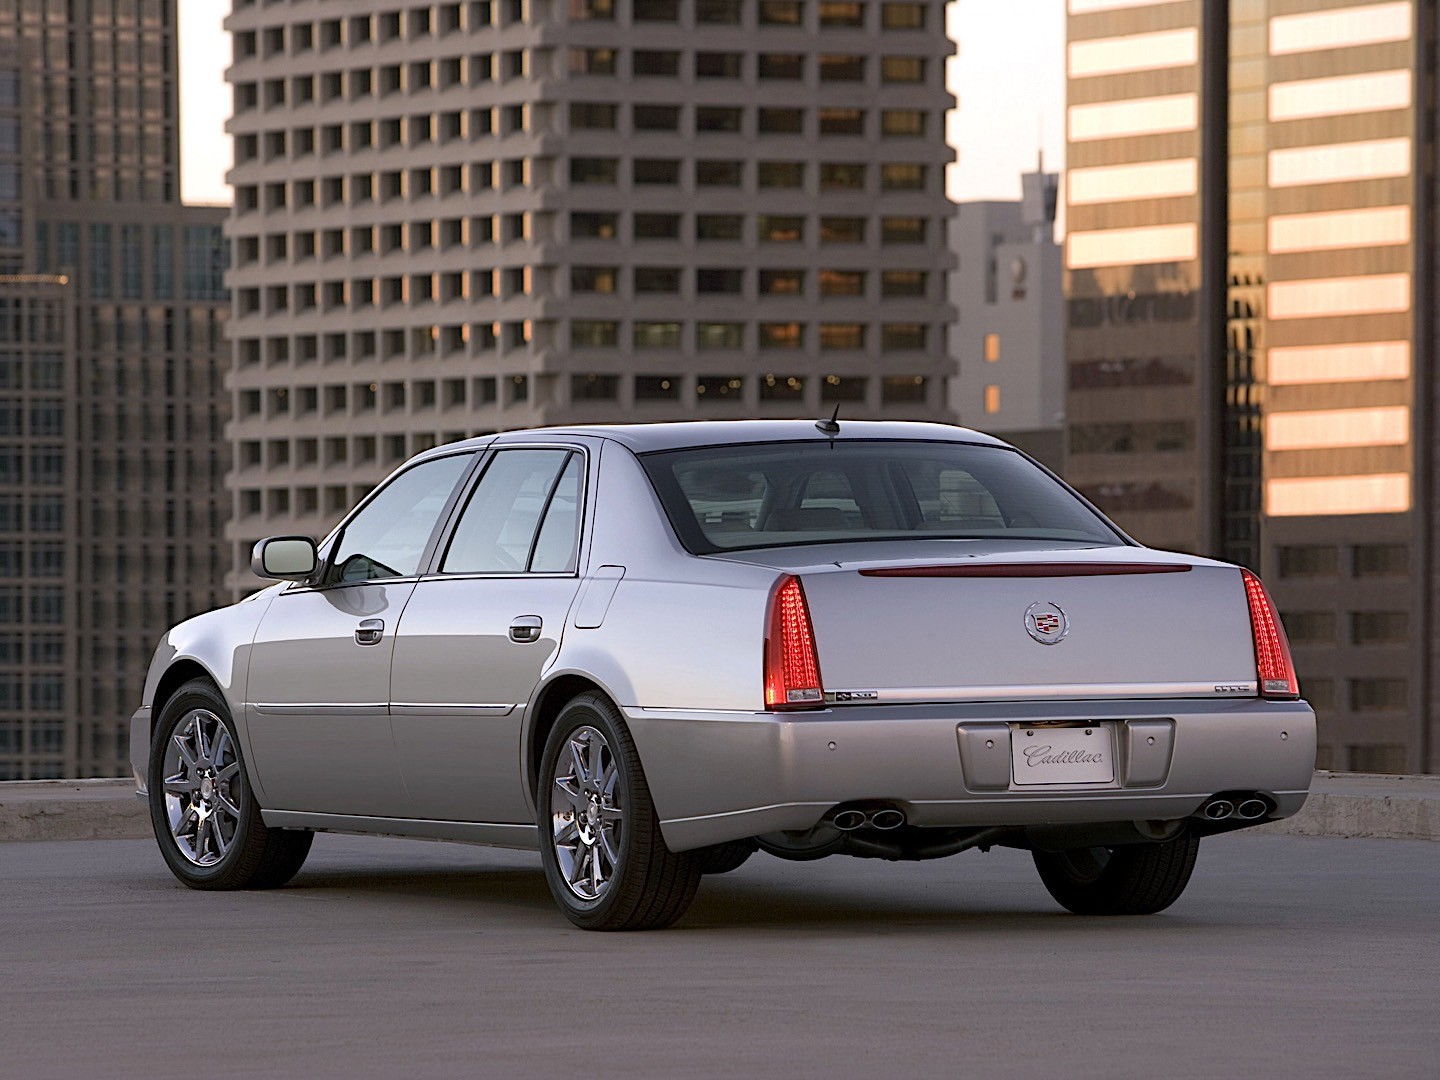 Cadillac Dts on Cadillac Northstar V8 Engine